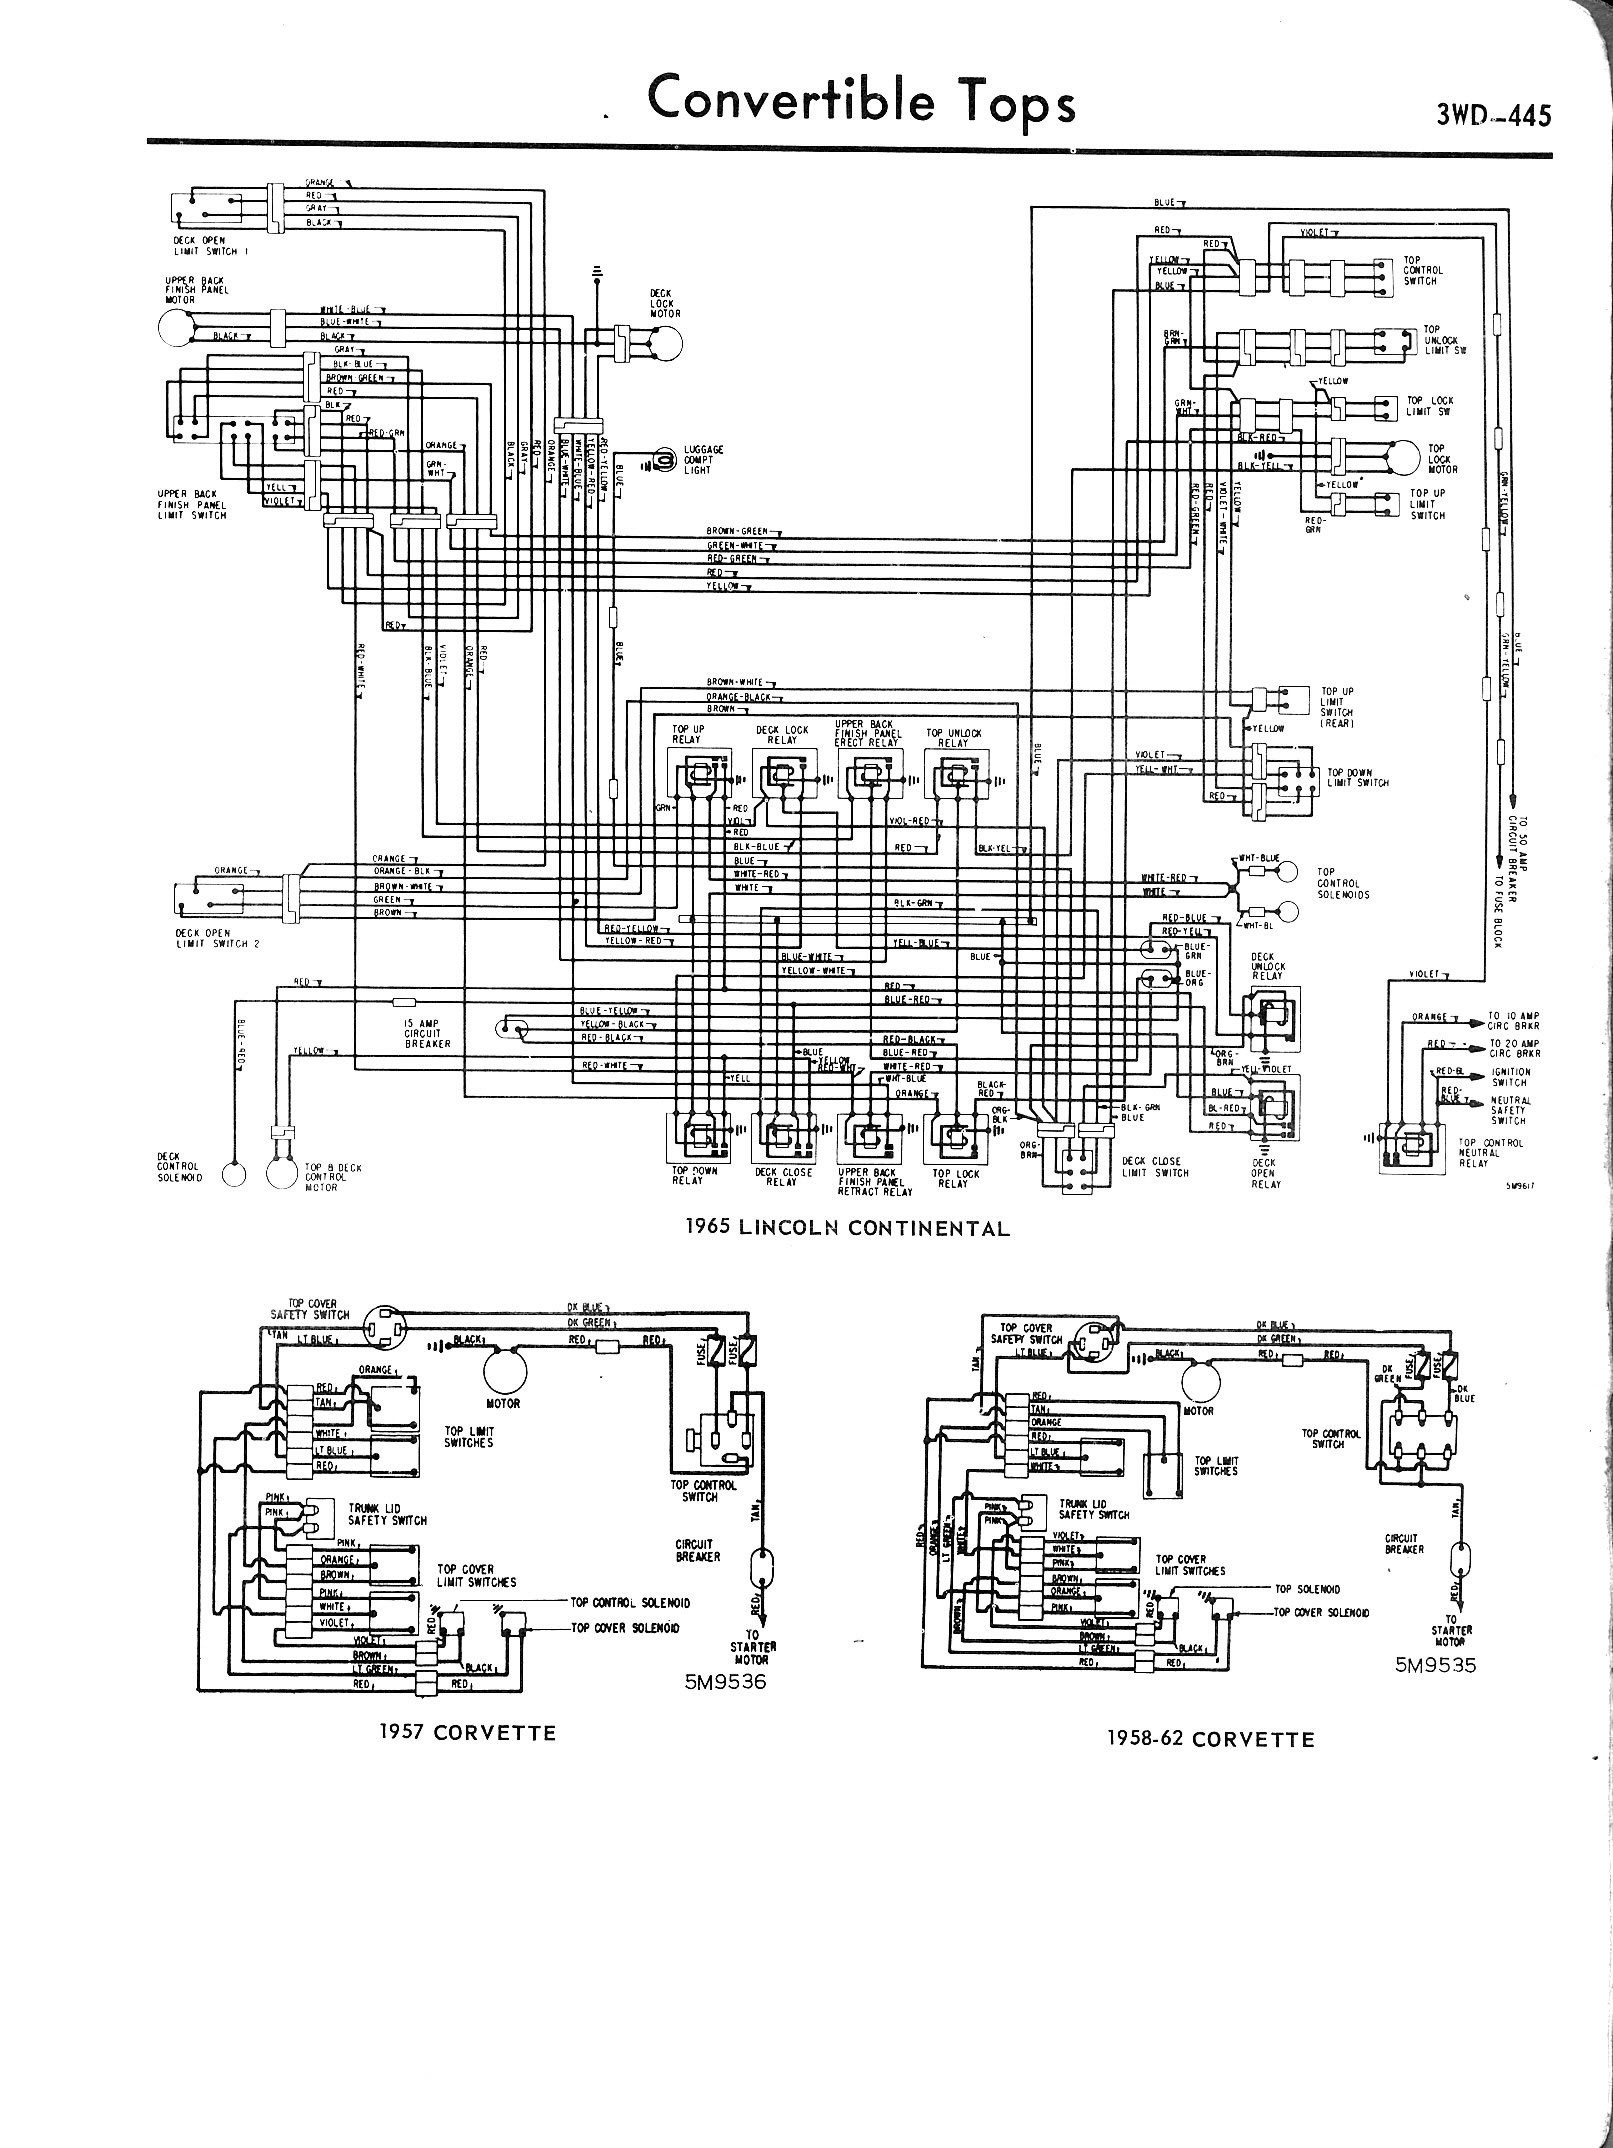 51 chevy bel air diagram